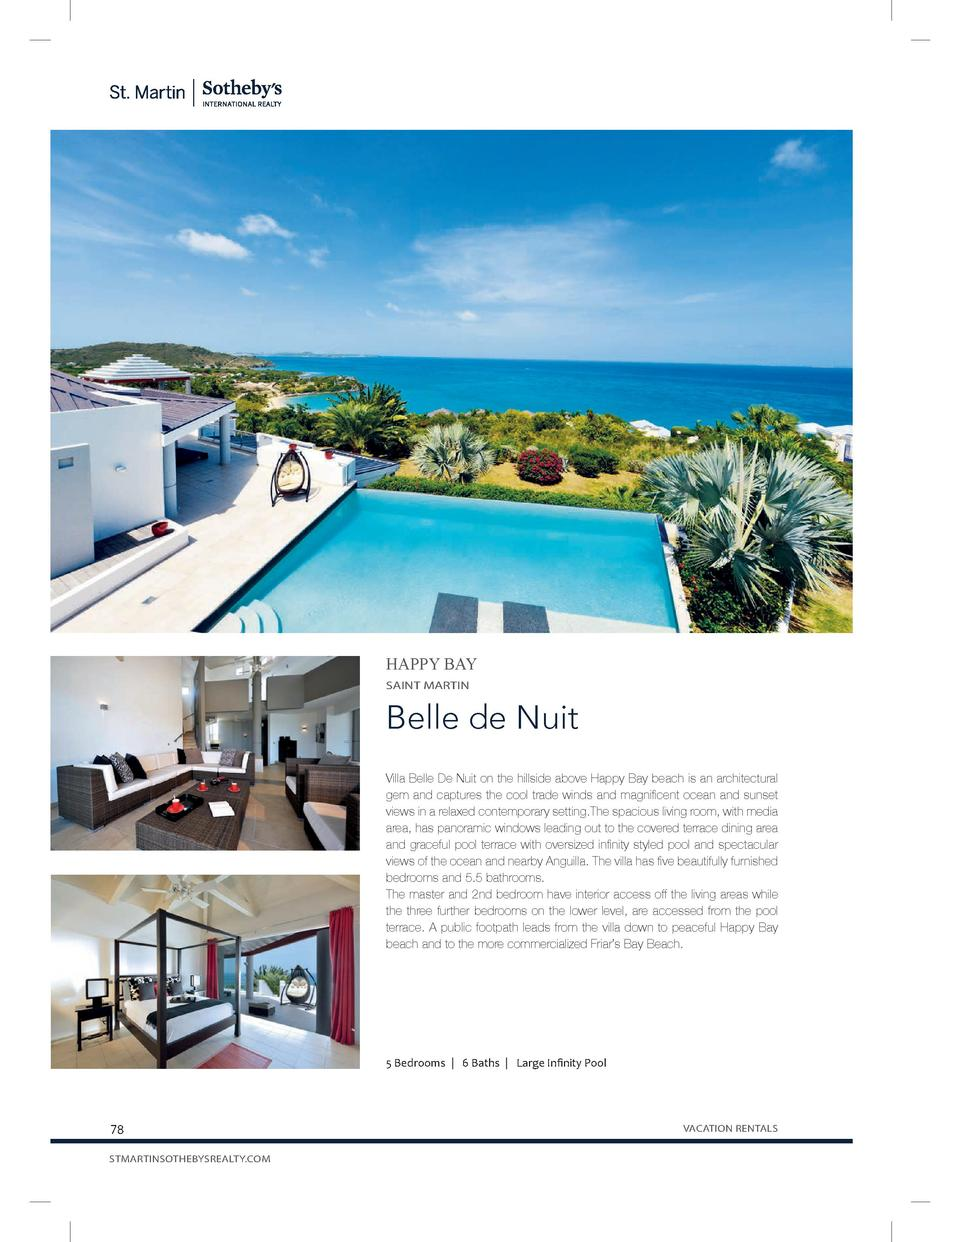 HAPPY BAY SAINT MARTIN  Belle de Nuit Villa Belle De Nuit on the hillside above Happy Bay beach is an architectural gem an...